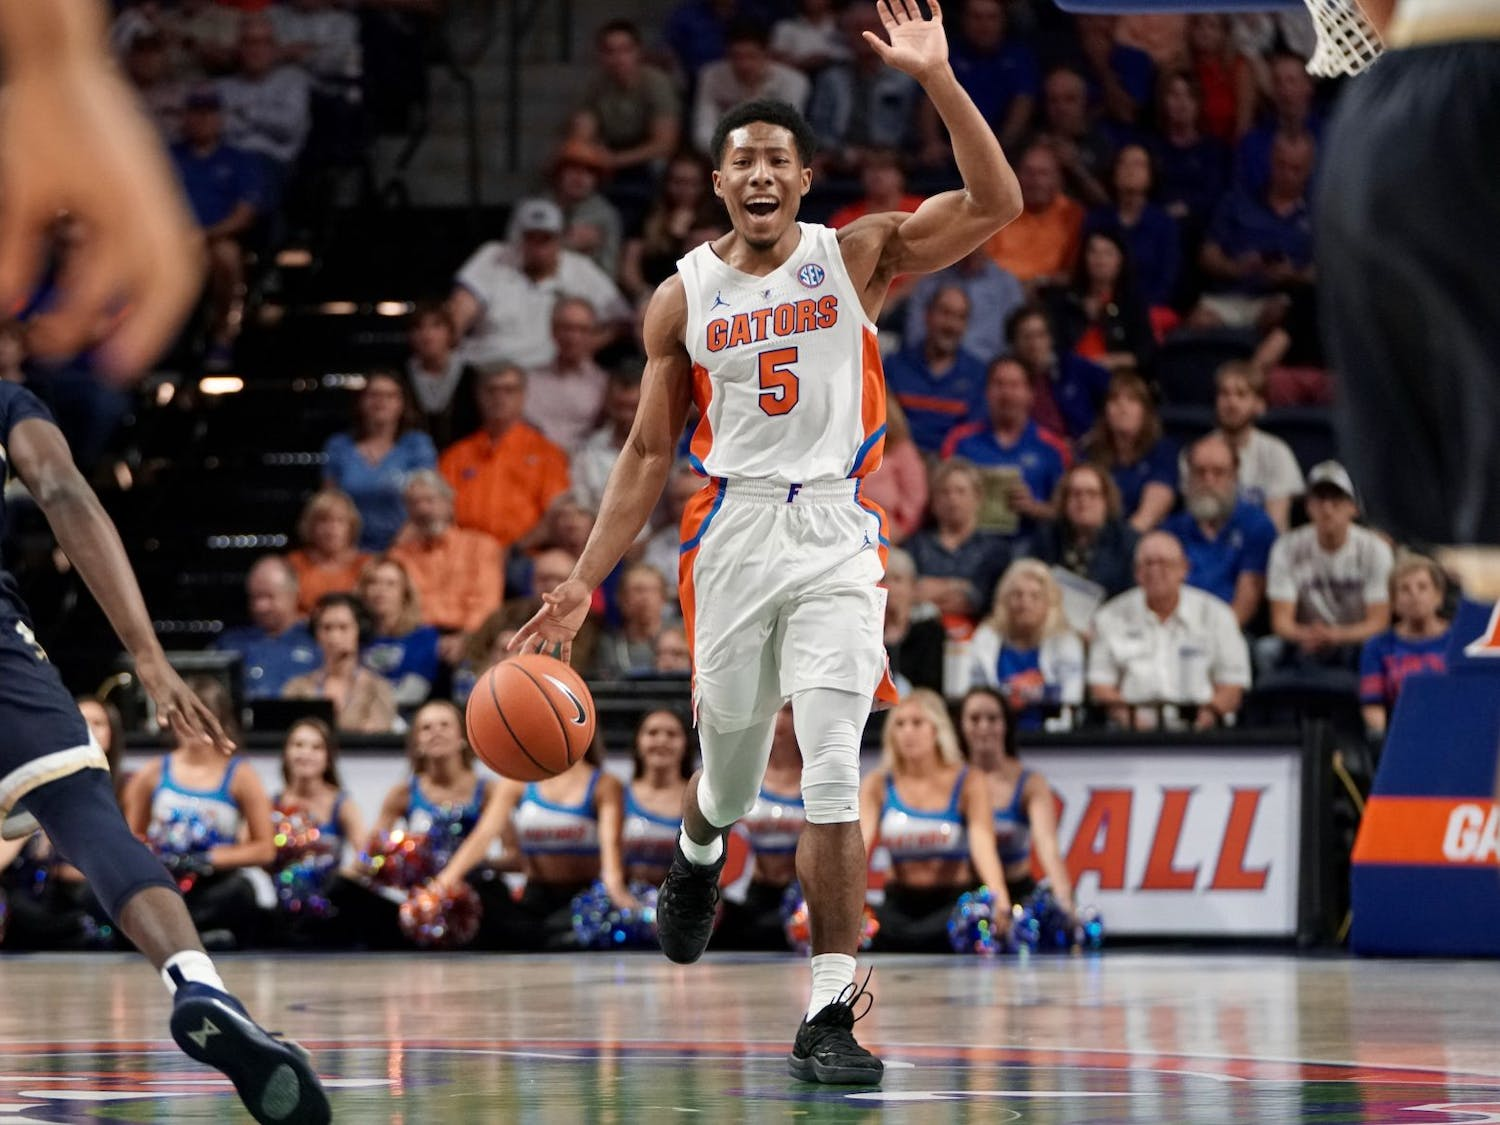 Senior guard KeVaughn Allen went 6-of-11 from the field for 14 points on Friday against Charleston Southern. He went 0-for-4 in the season-opener against FSU.